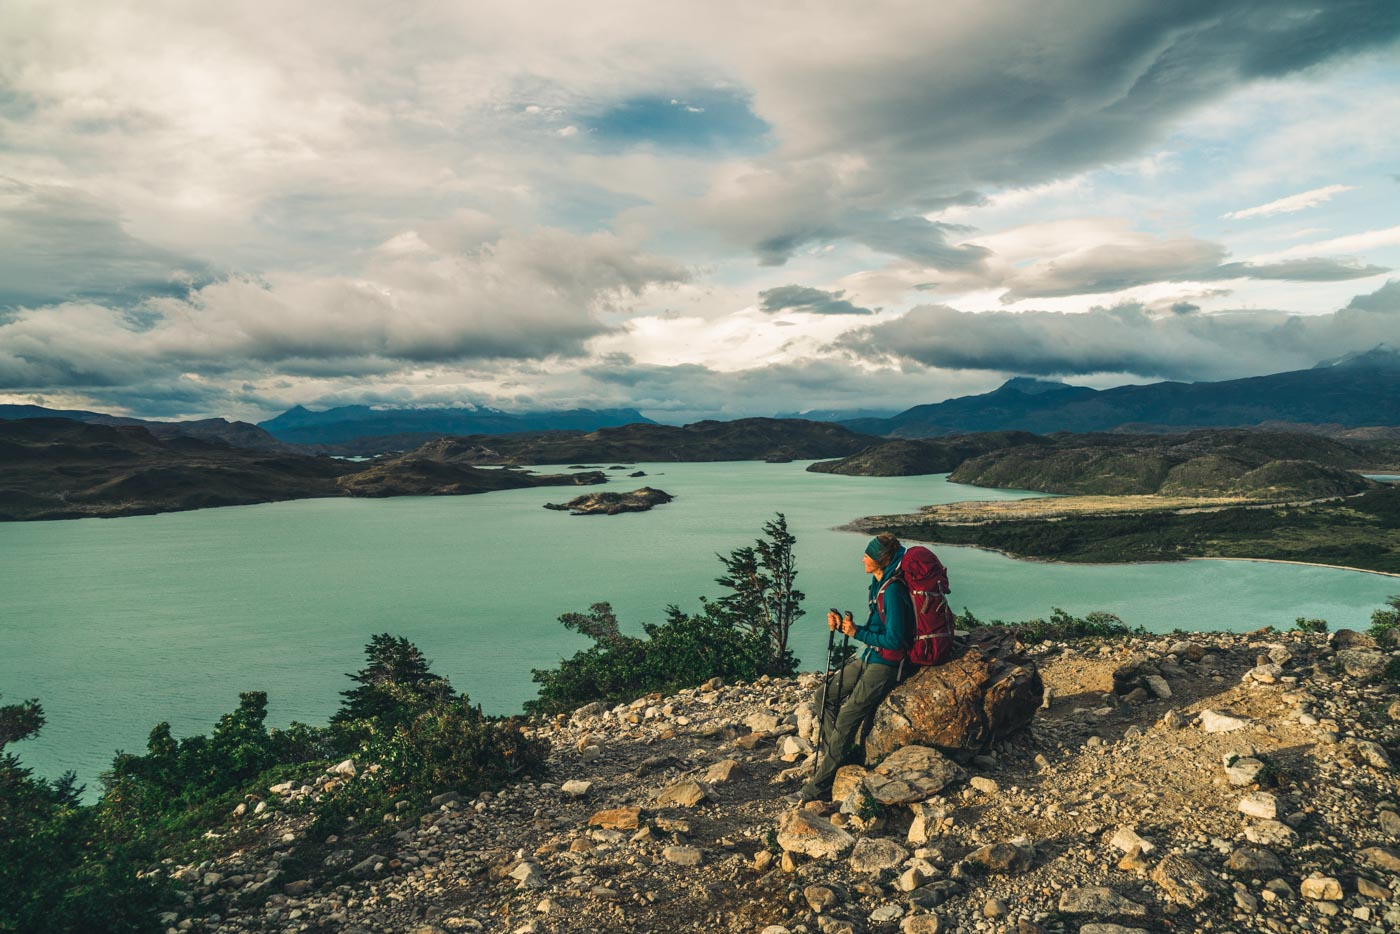 Overlooking Lago Nordenskjold en route to the French Valley, Torres del Paine National Park